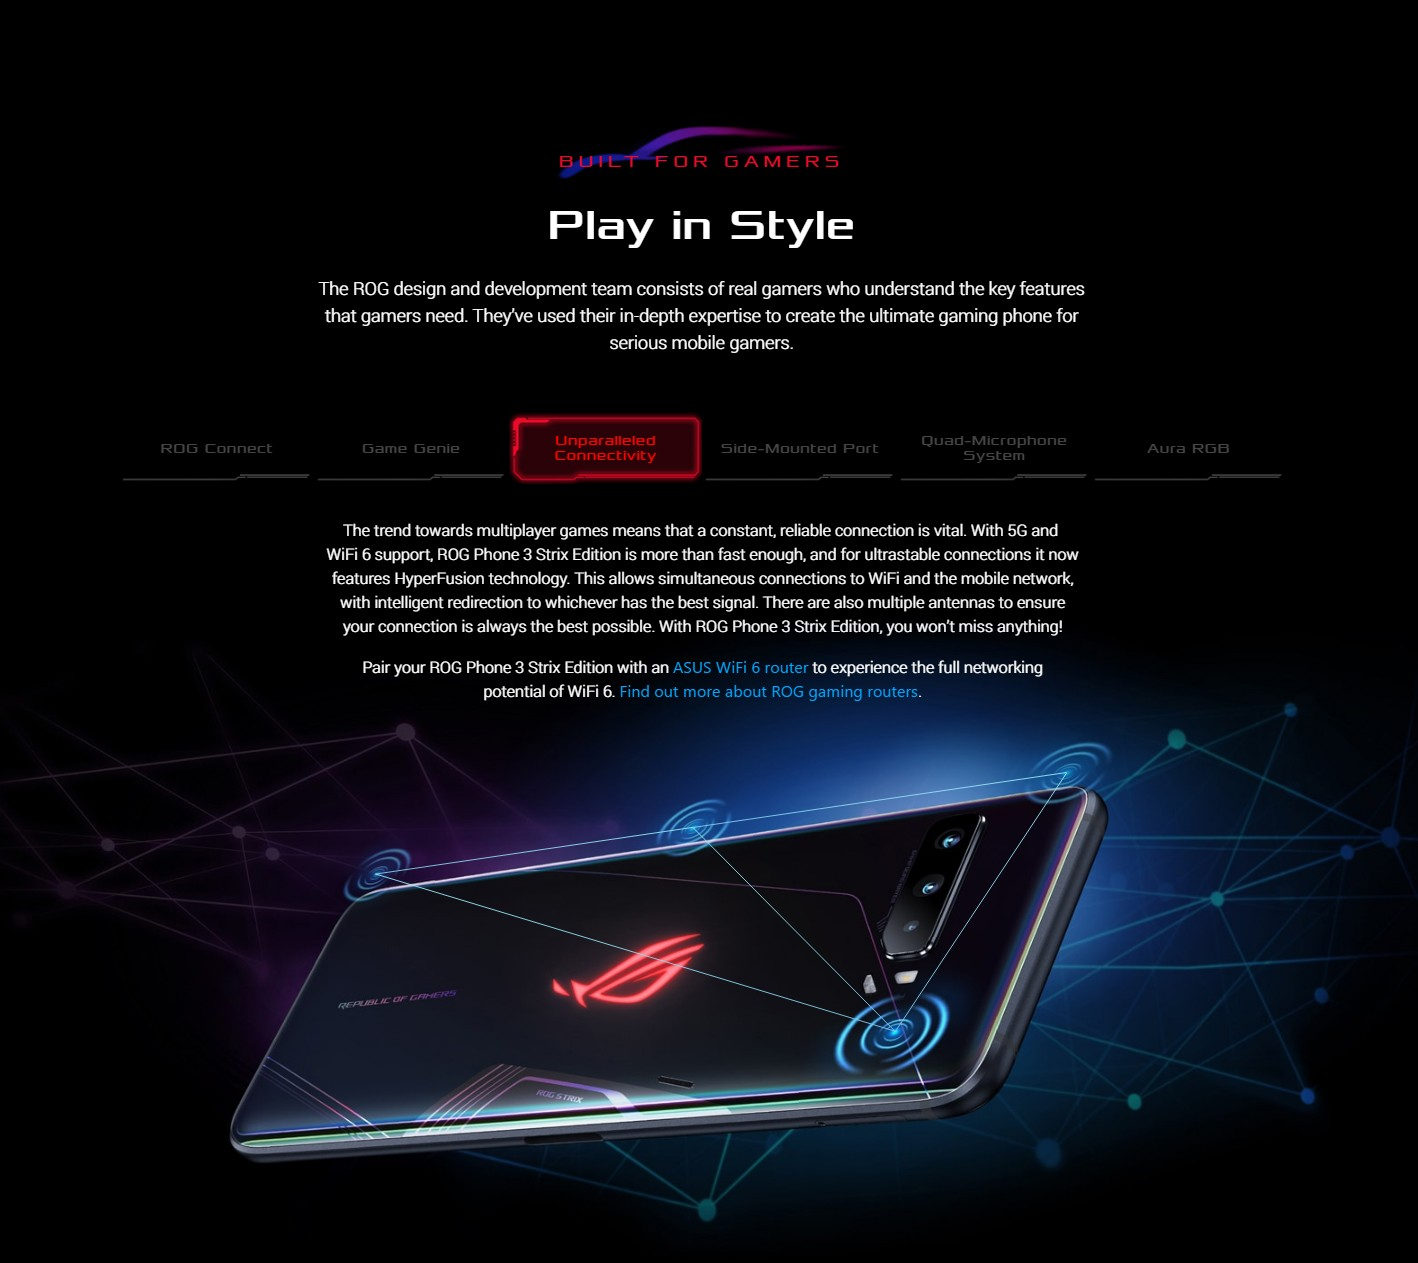 ASUS ROG Phone 3 Gaming 5G Smartphone WiFi